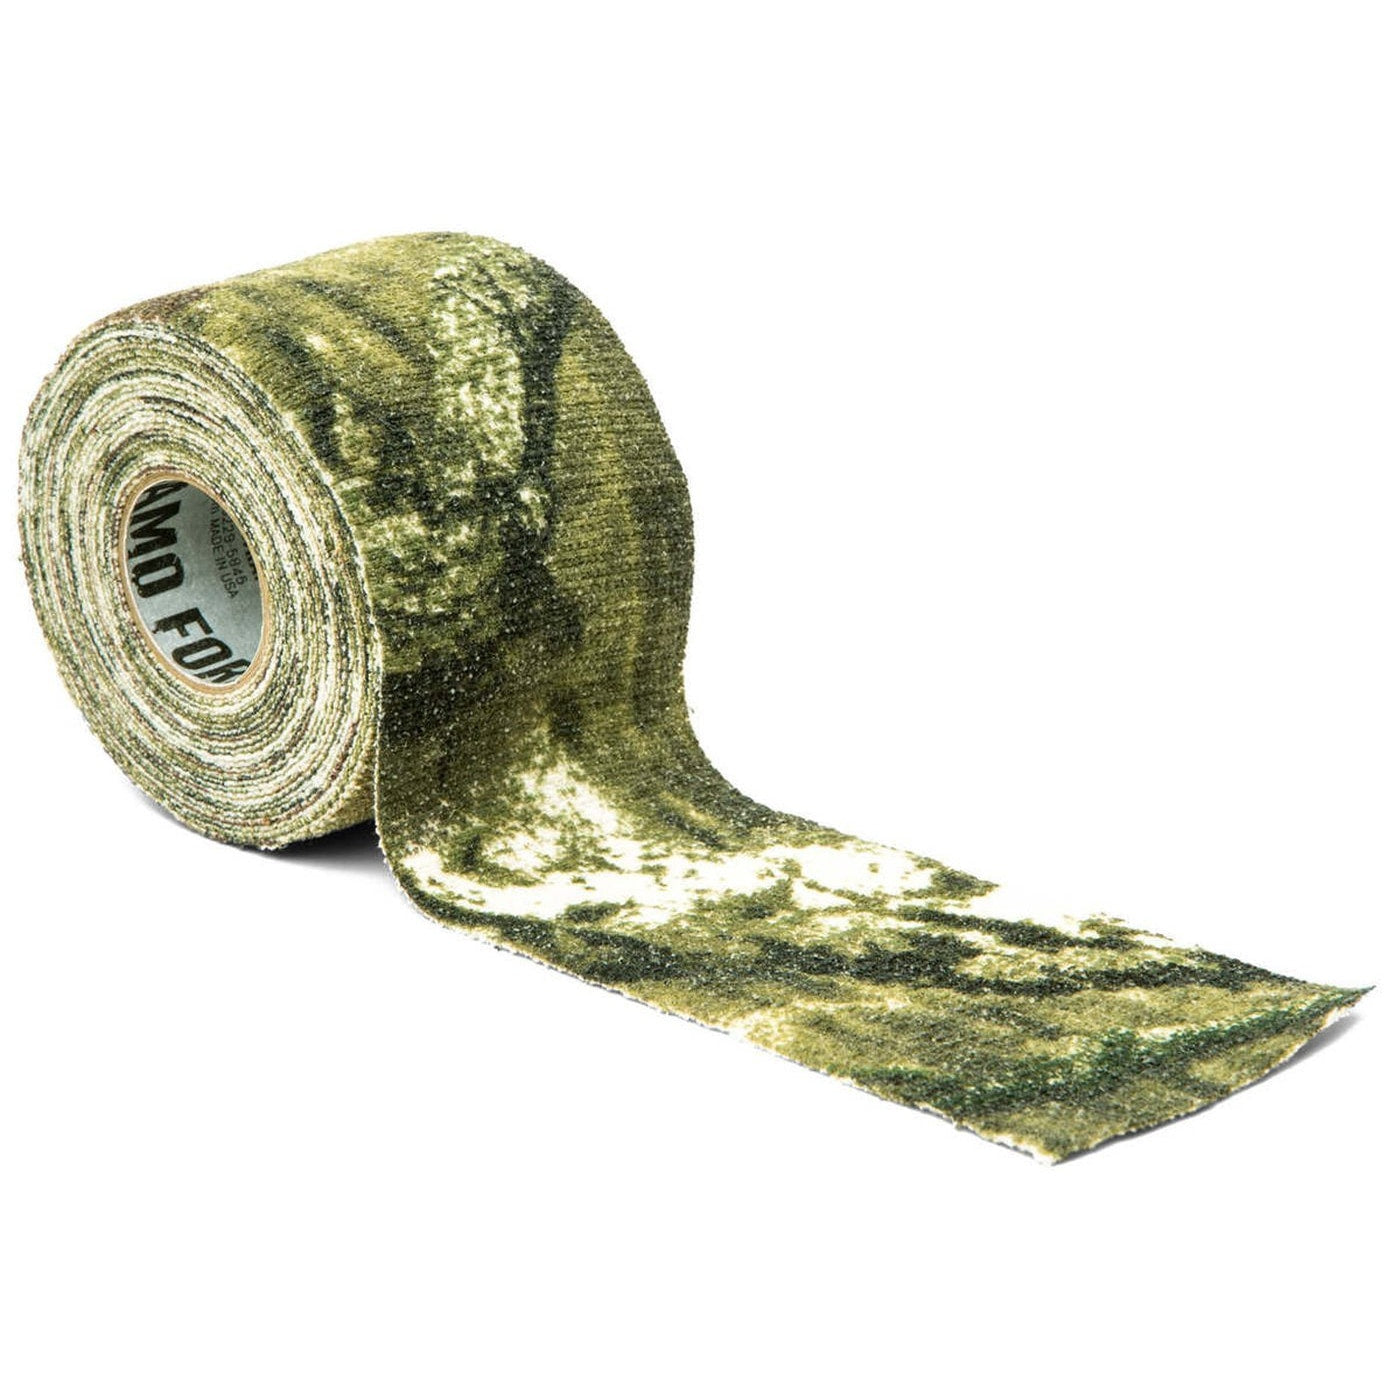 Camo Form Reusable Heavy-Duty Fabric Wrap - 2 X 144 - Mossy Oak Break-Up Infinity - Outdoor Equipment - Mcnett Tactical - Colonel Mustard